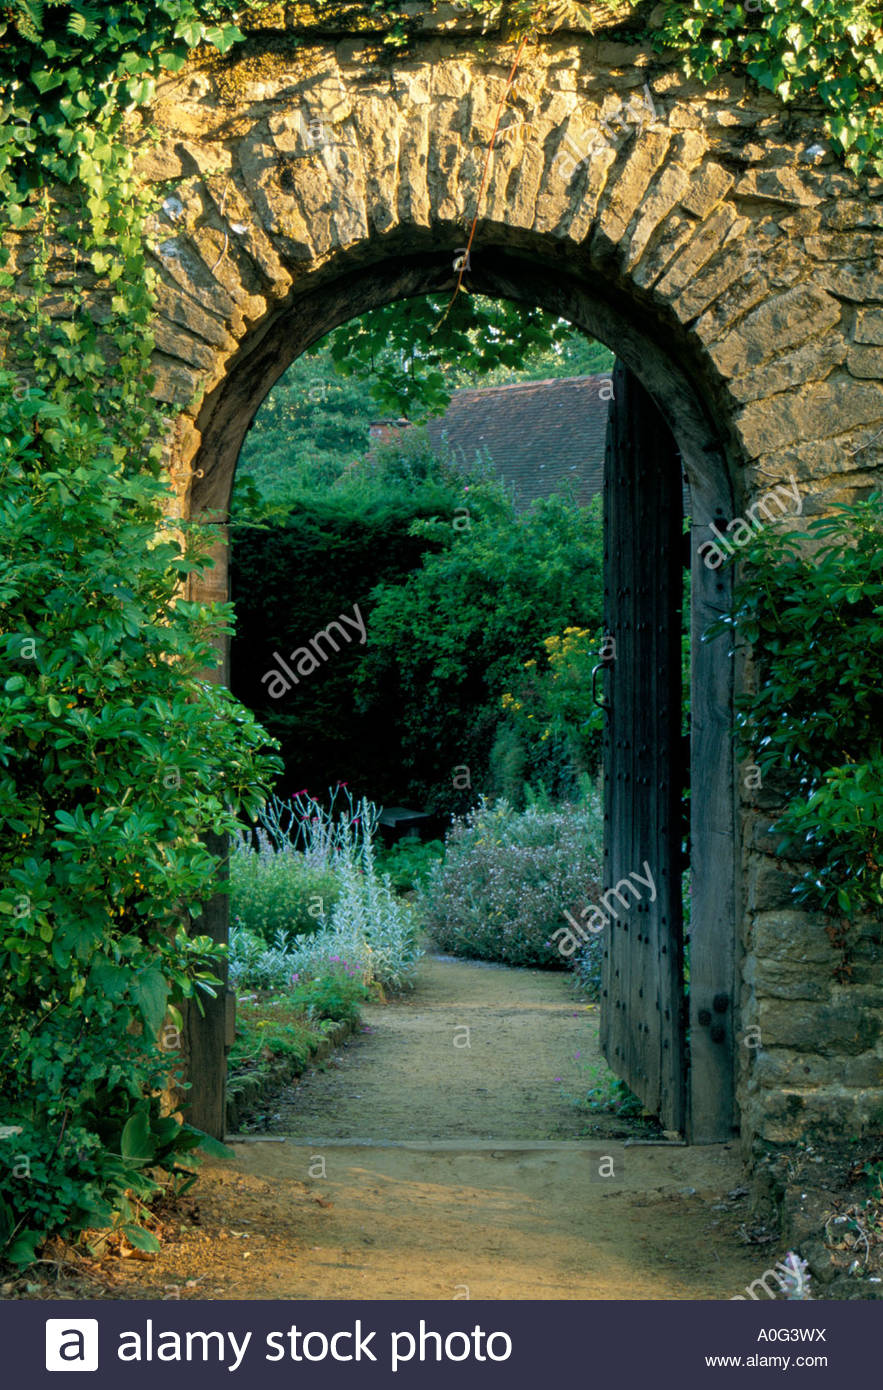 Munstead Wood Surrey Garden Door In Stone Wall Leading Through To